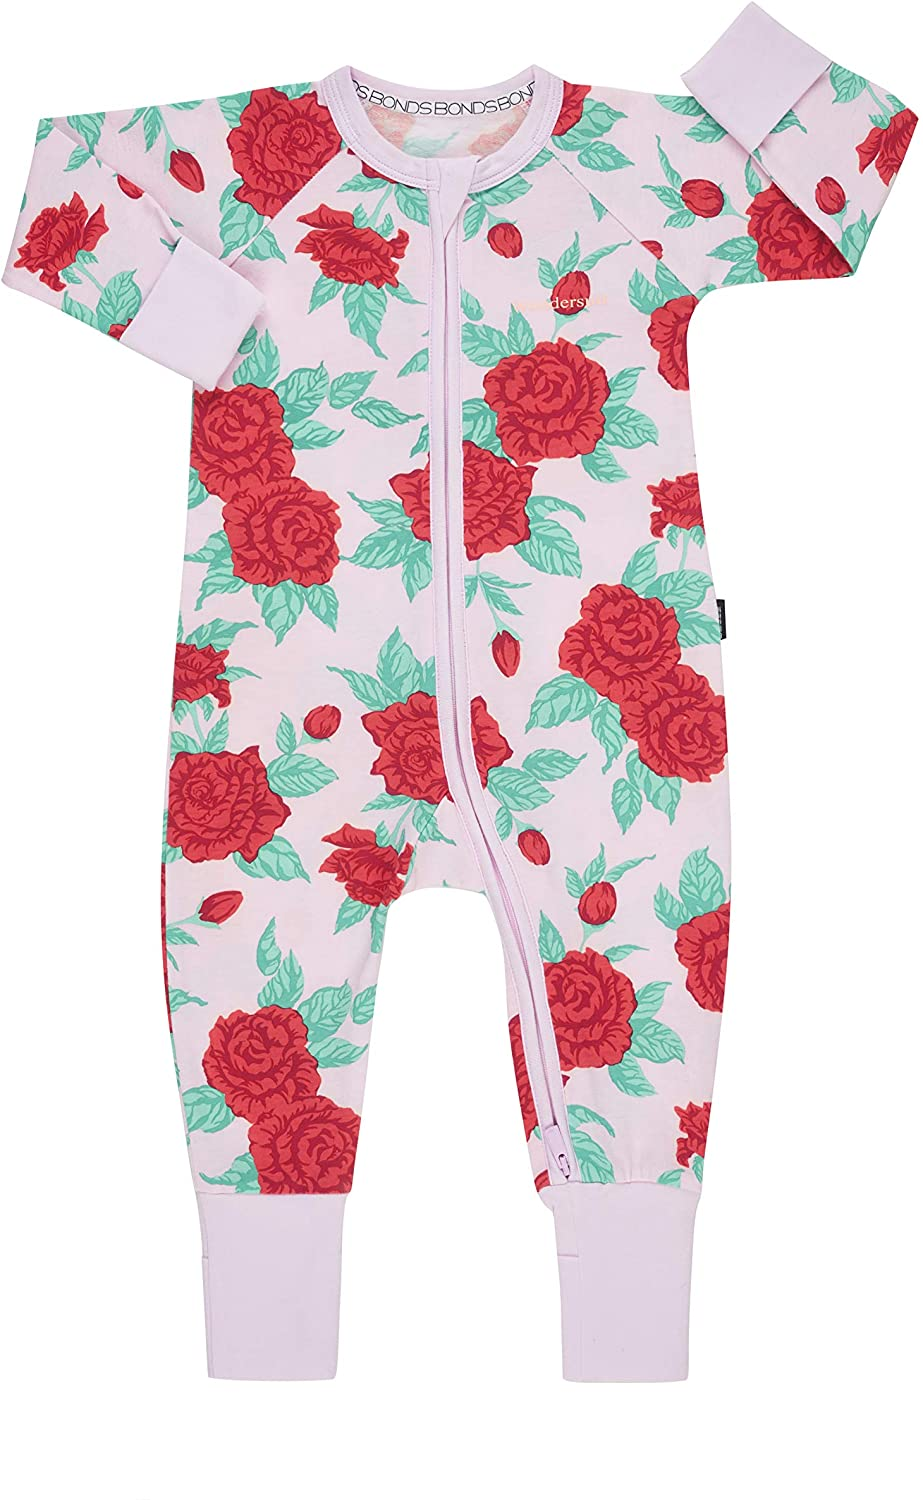 Bonds Zip Wondersuit - Rose Garden Pink